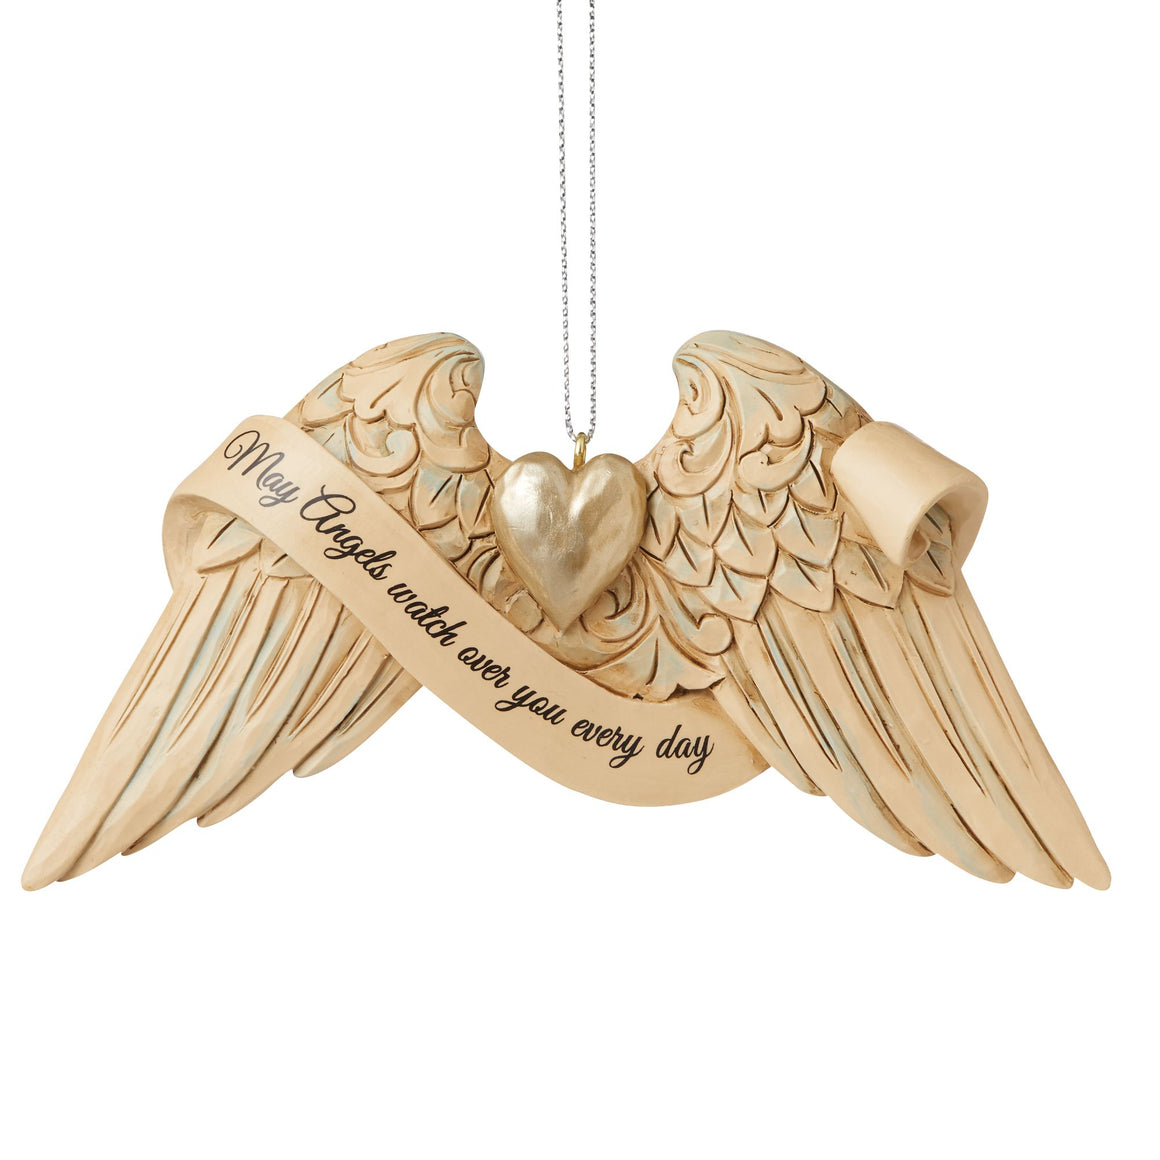 Guardian Angel Wings Hanging Ornament - Heartwood Creek by Jim Shore